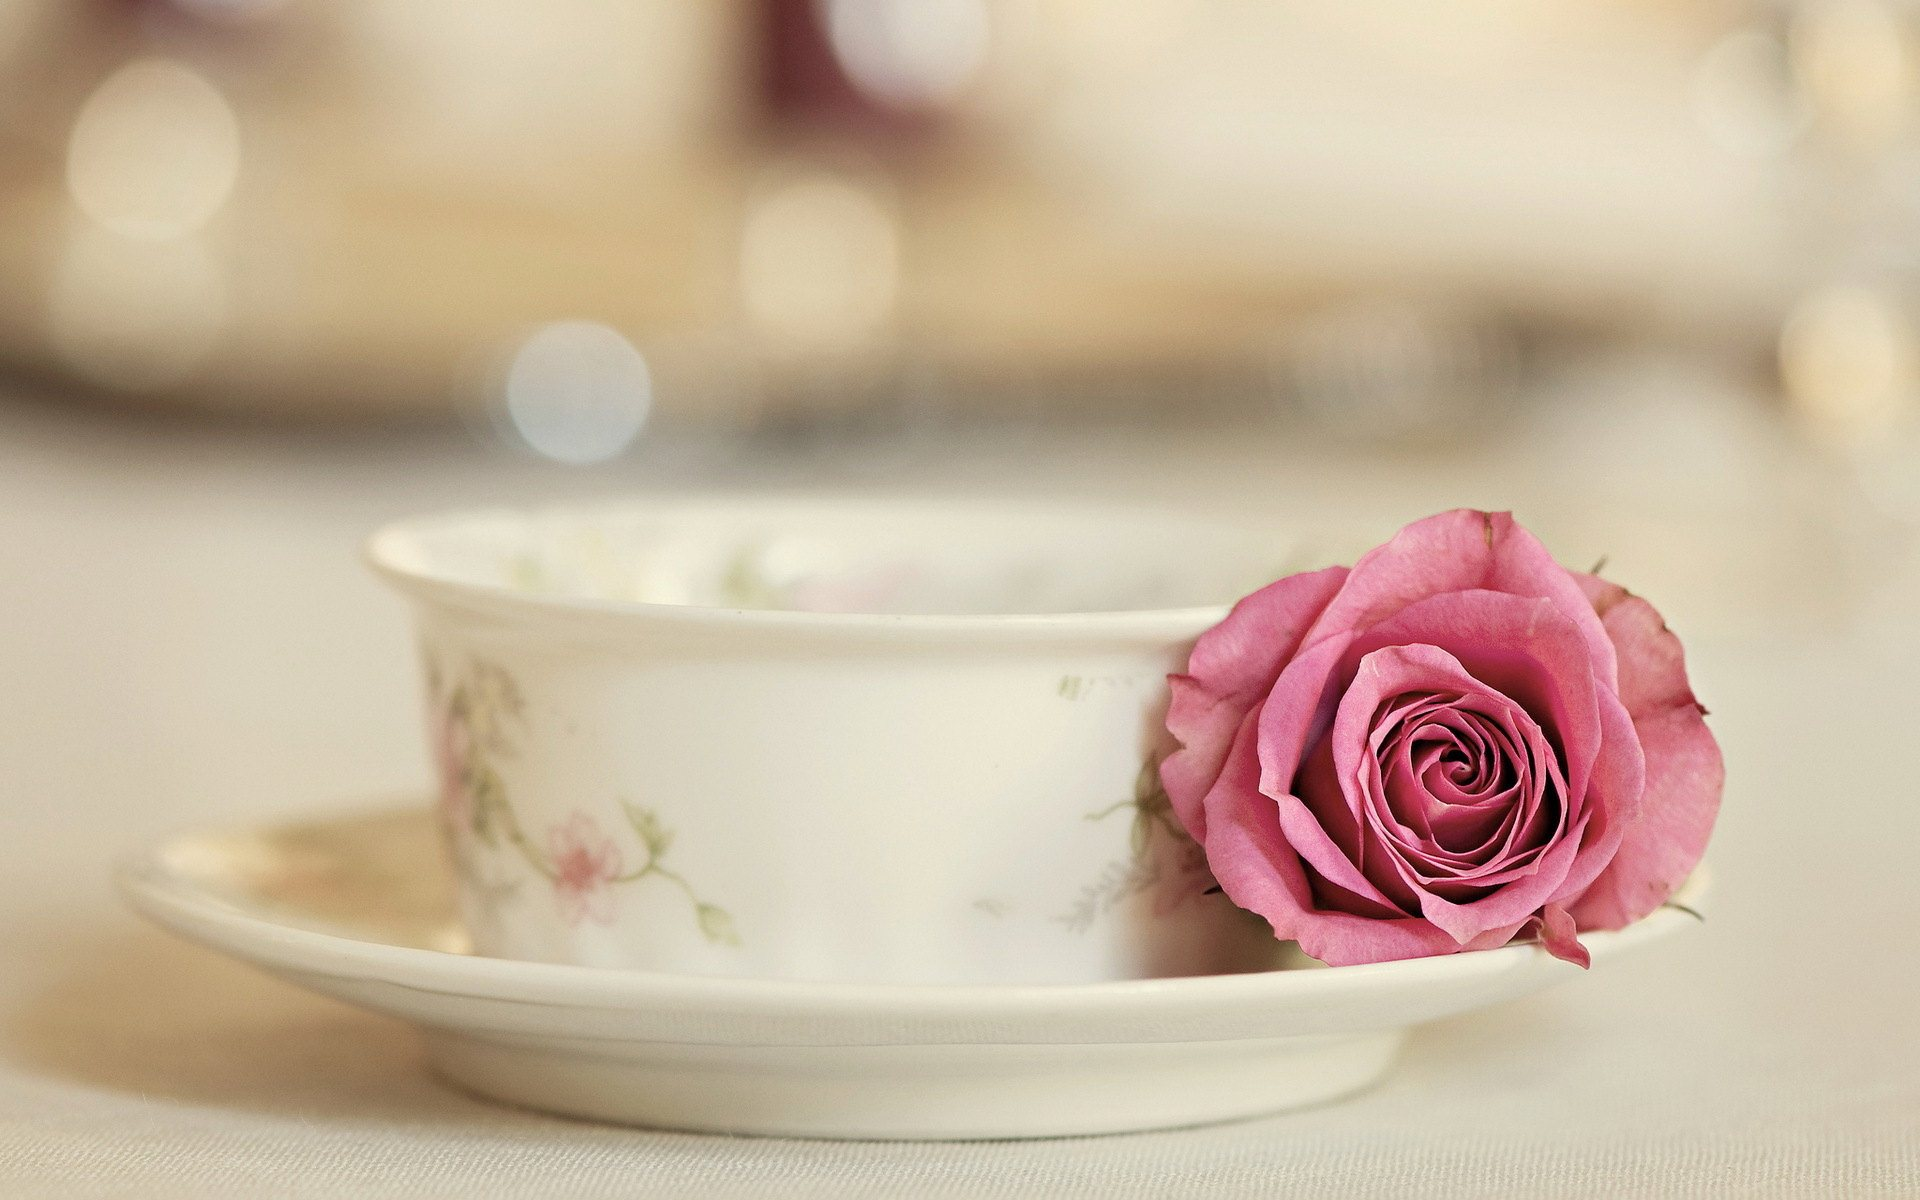 Rose with Tea Cup Widescreen HD Wallpaper 1920x1200